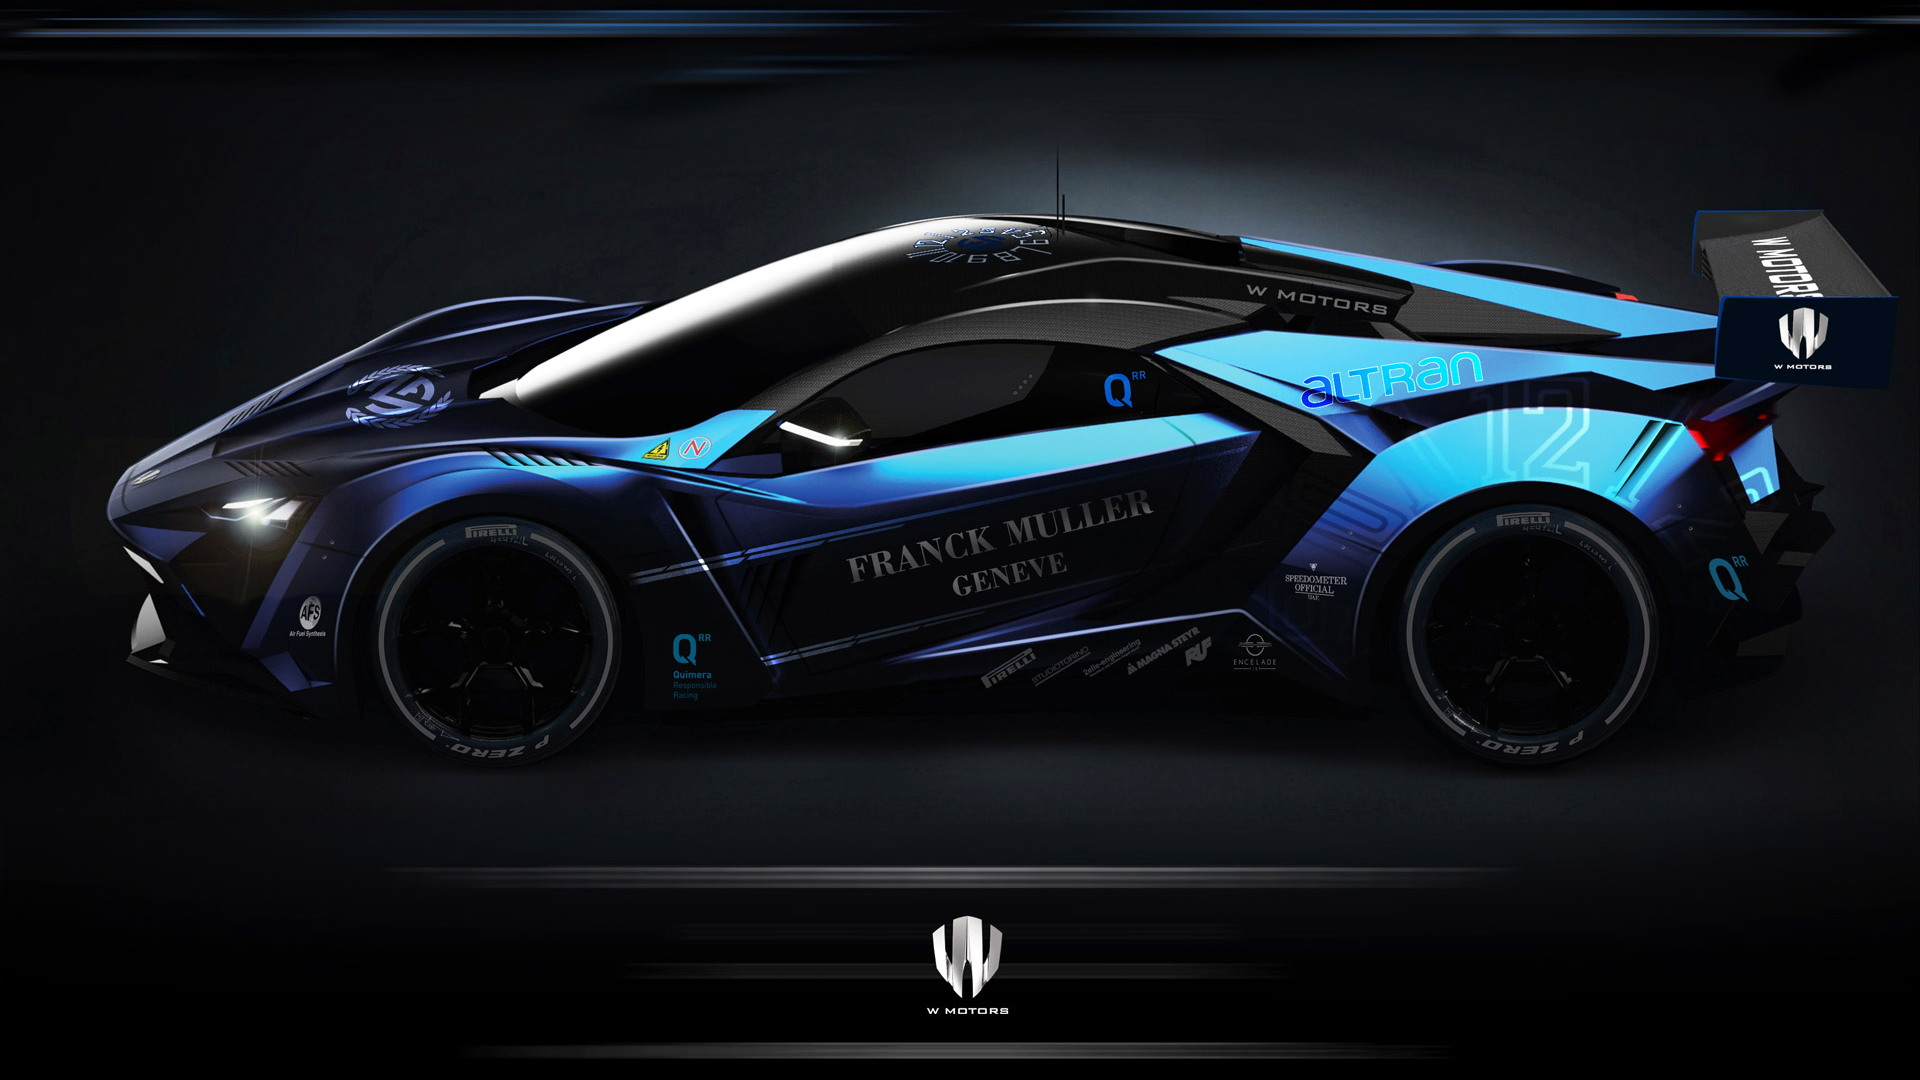 W Motors Lykan Supersport HSF (Hybrid Synthetic Fuel) race car